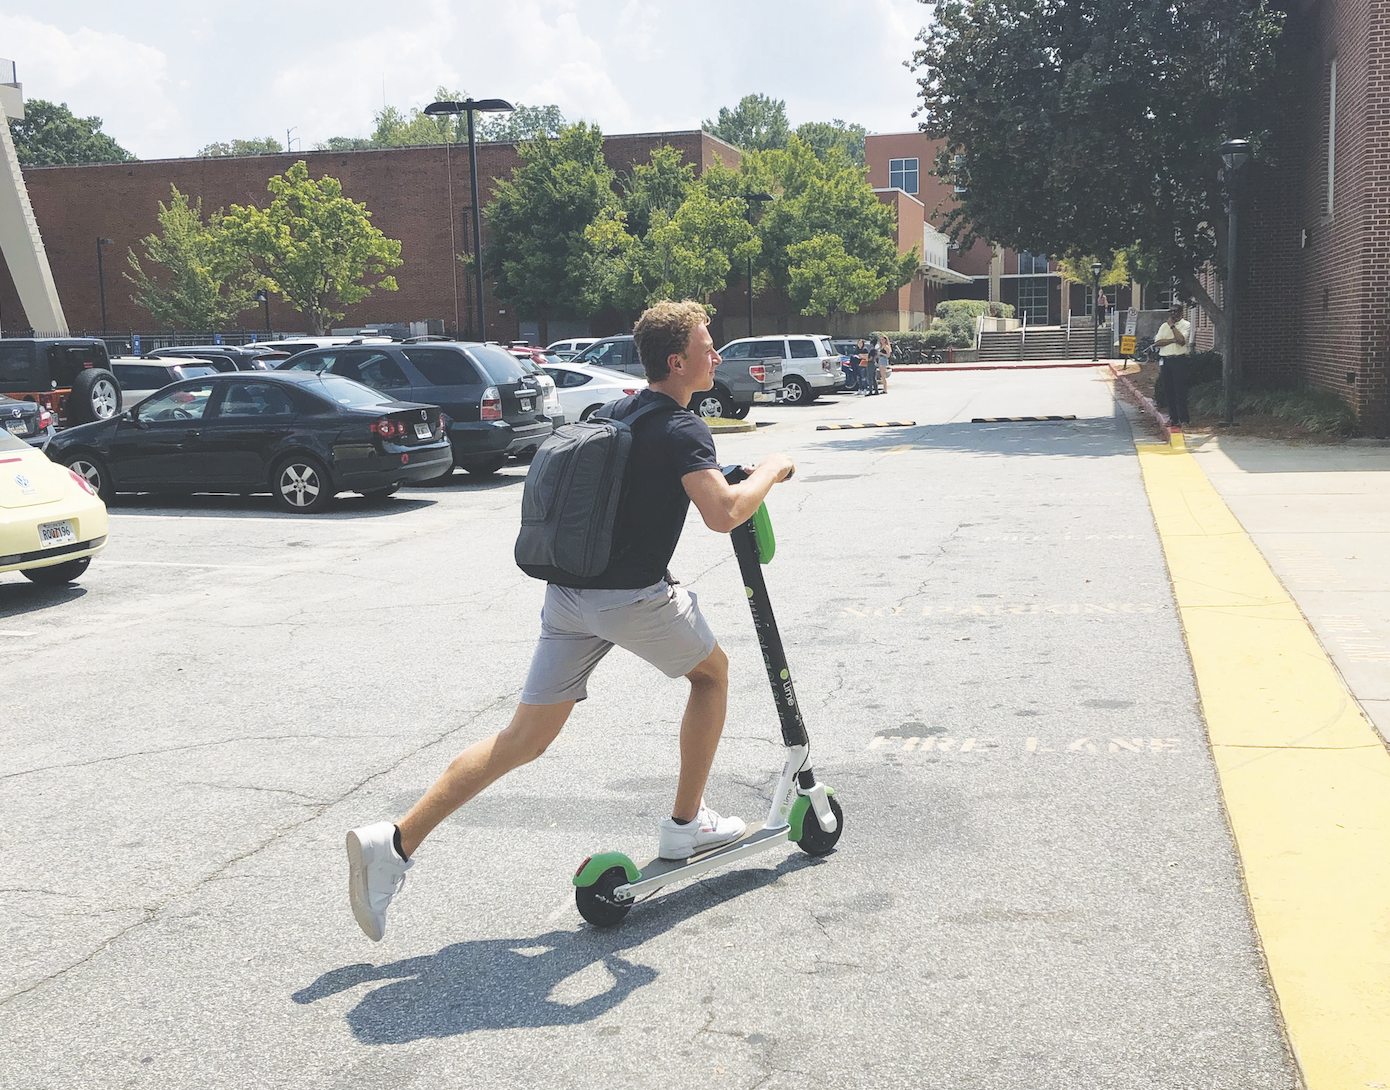 Rise of scooters